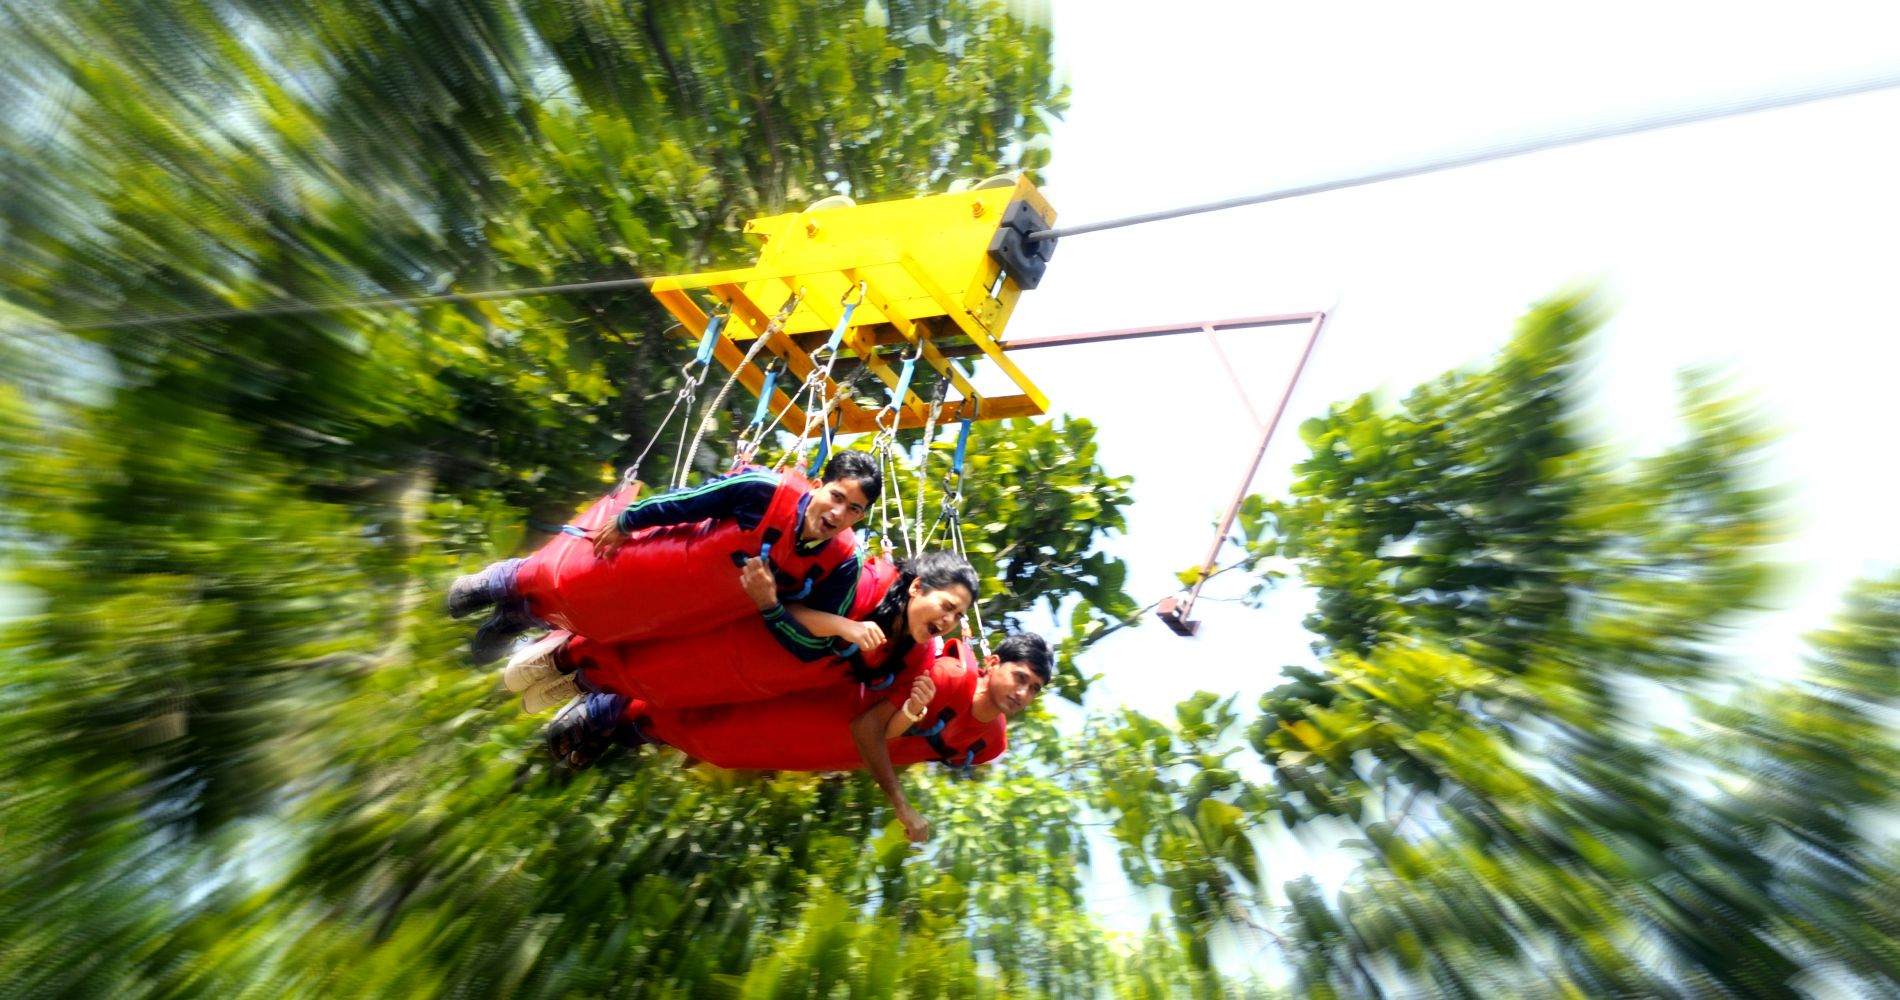 India's highest giant swing experience